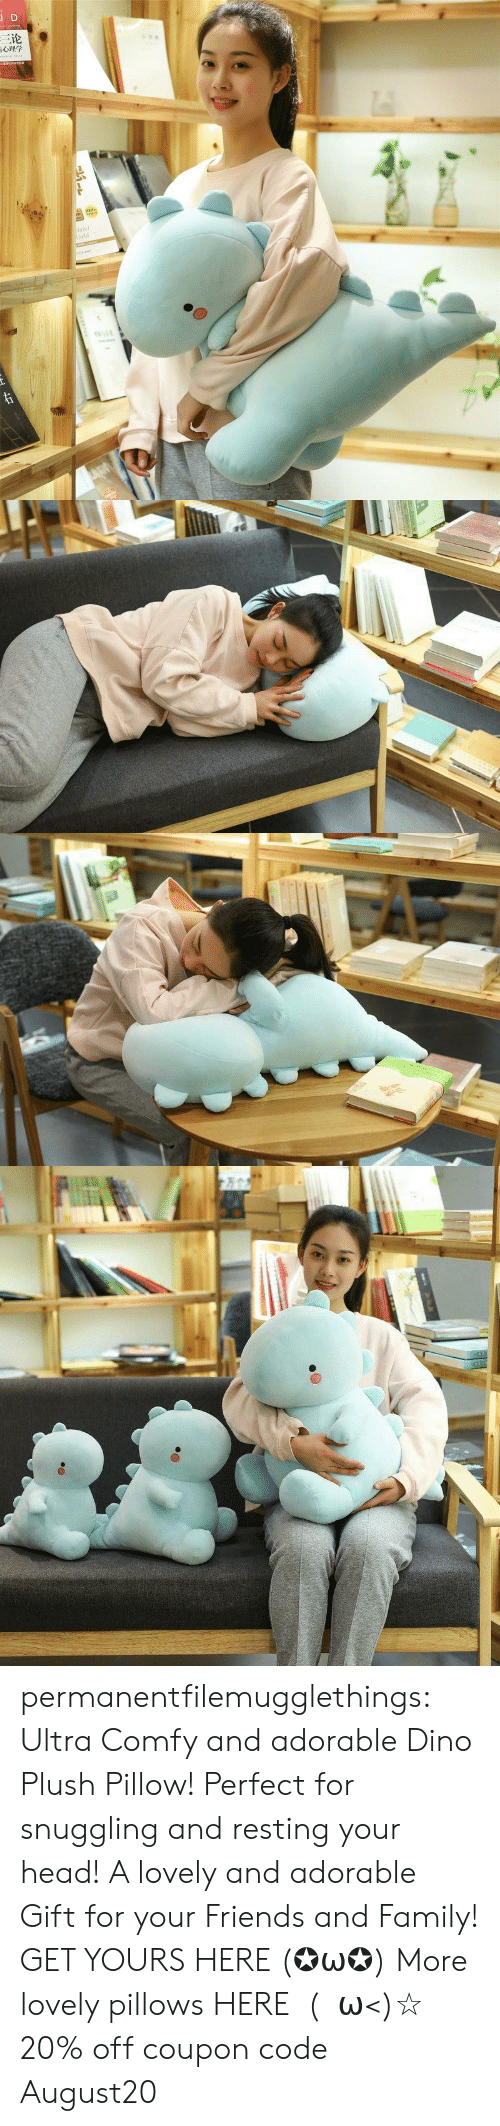 pillows: JD  三论  laint  orld  TDNAR  ww.e permanentfilemugglethings:  Ultra Comfy and adorable Dino Plush Pillow! Perfect for snuggling and resting your head! A lovely and adorable Gift for your Friends and Family! GET YOURS HERE (✪ω✪) More lovely pillows HERE  (・ω<)☆ 20% off coupon code:August20